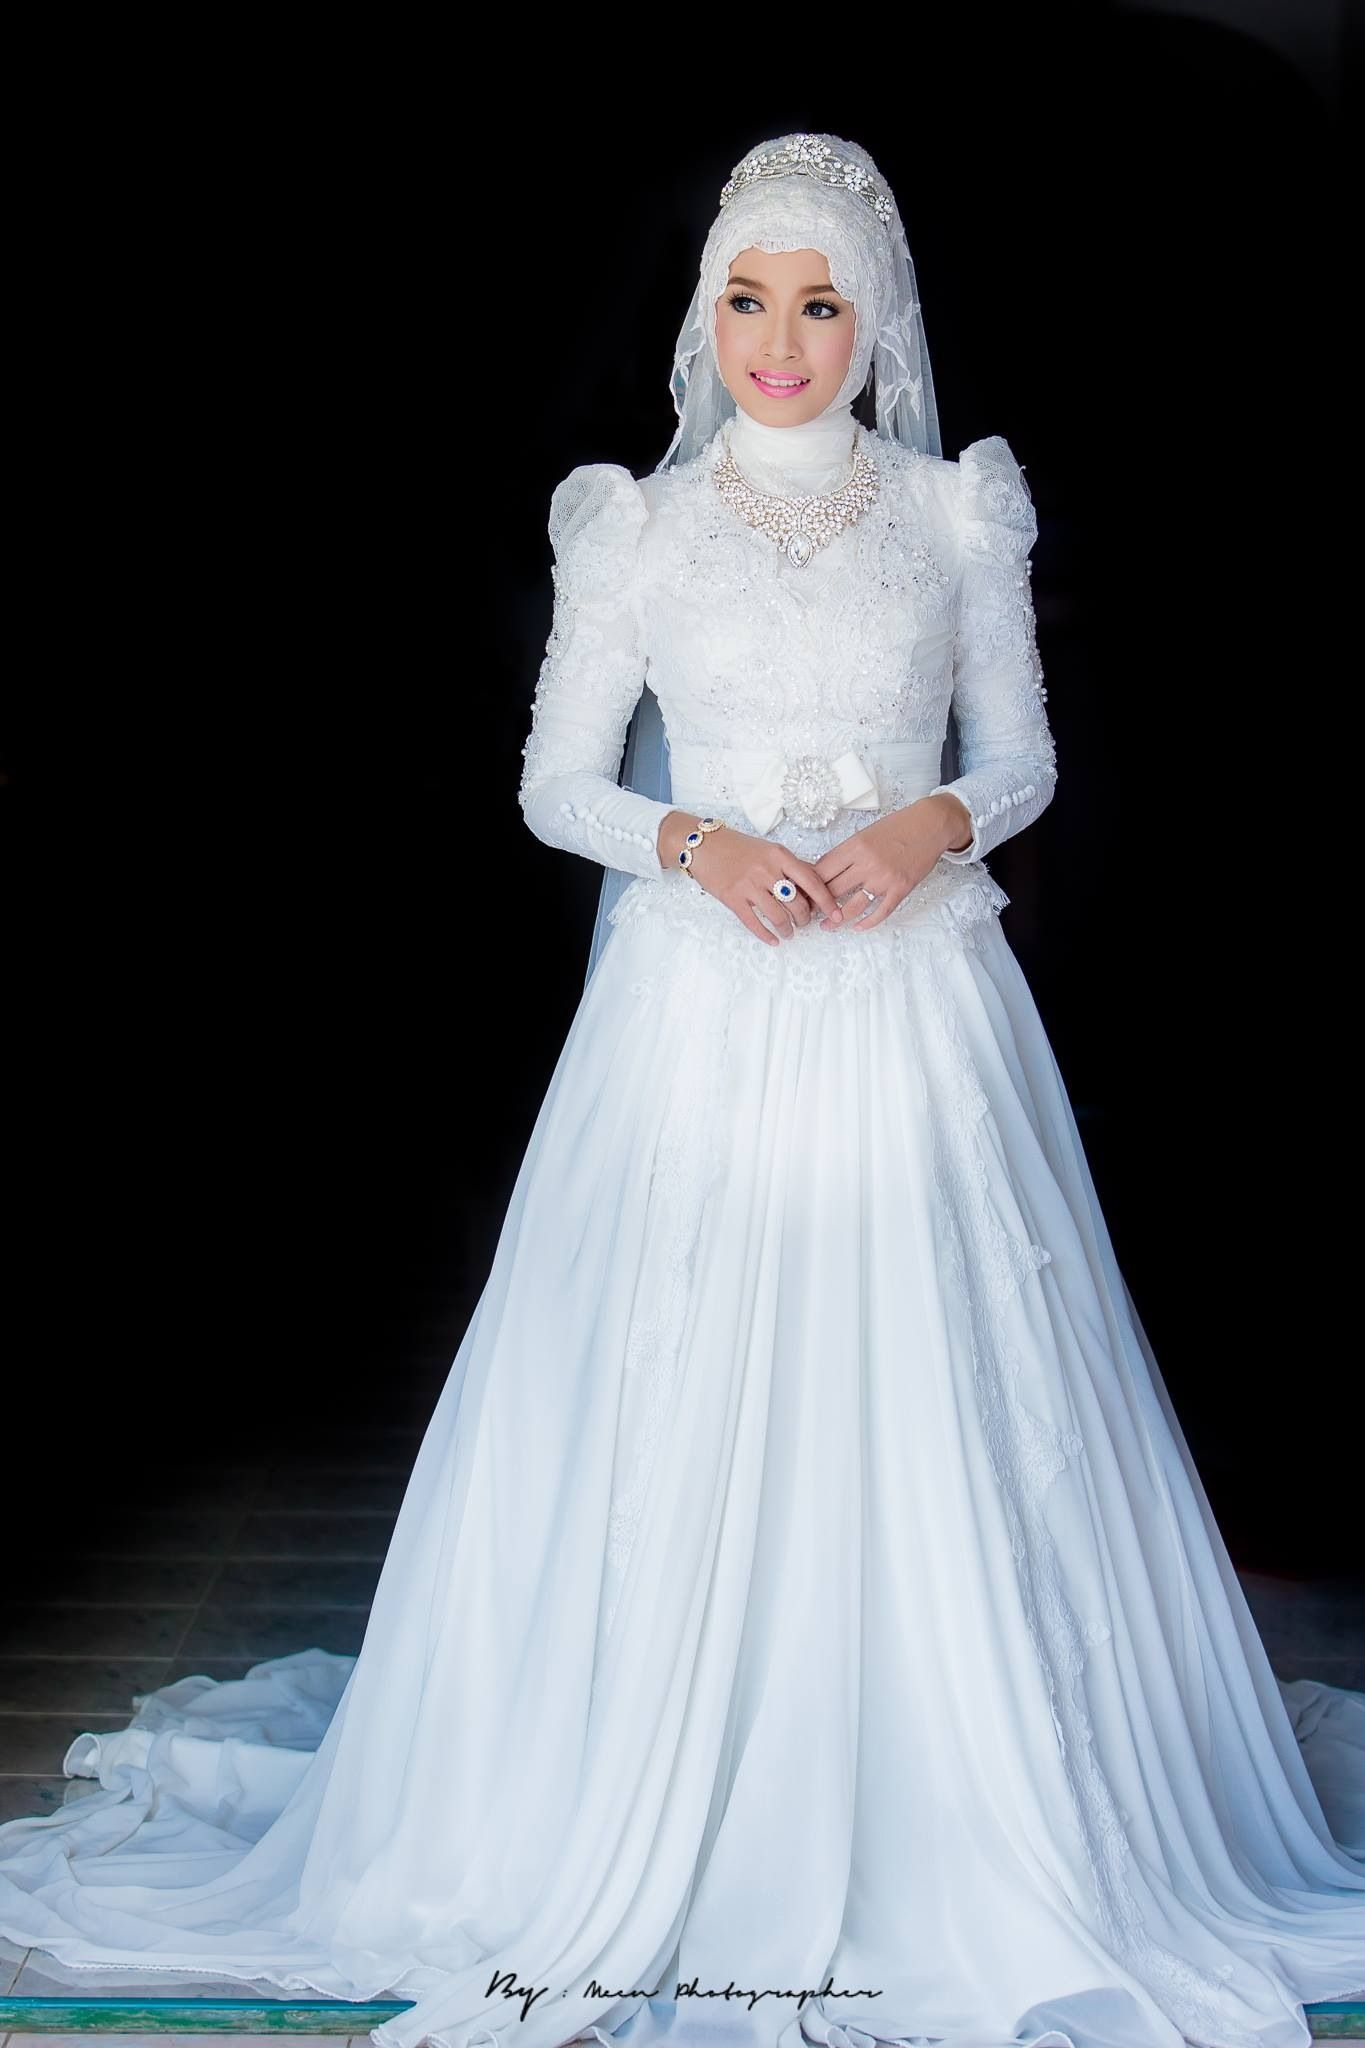 Wedding w muslim pinterest wedding wedding dress for Wedding dresses for muslim brides